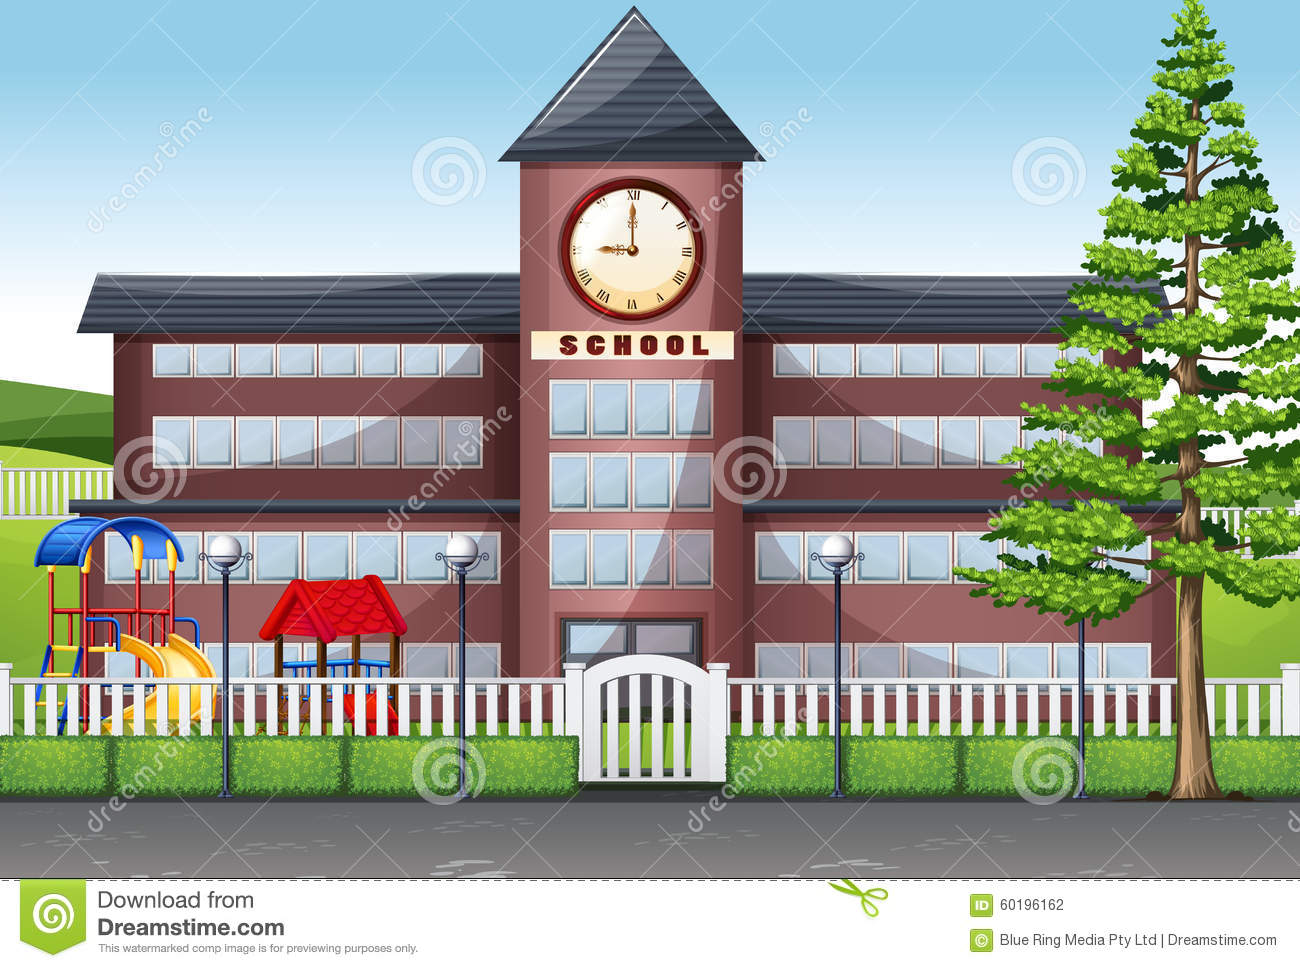 School Building And Playground Stock Vector Illustration 60196162